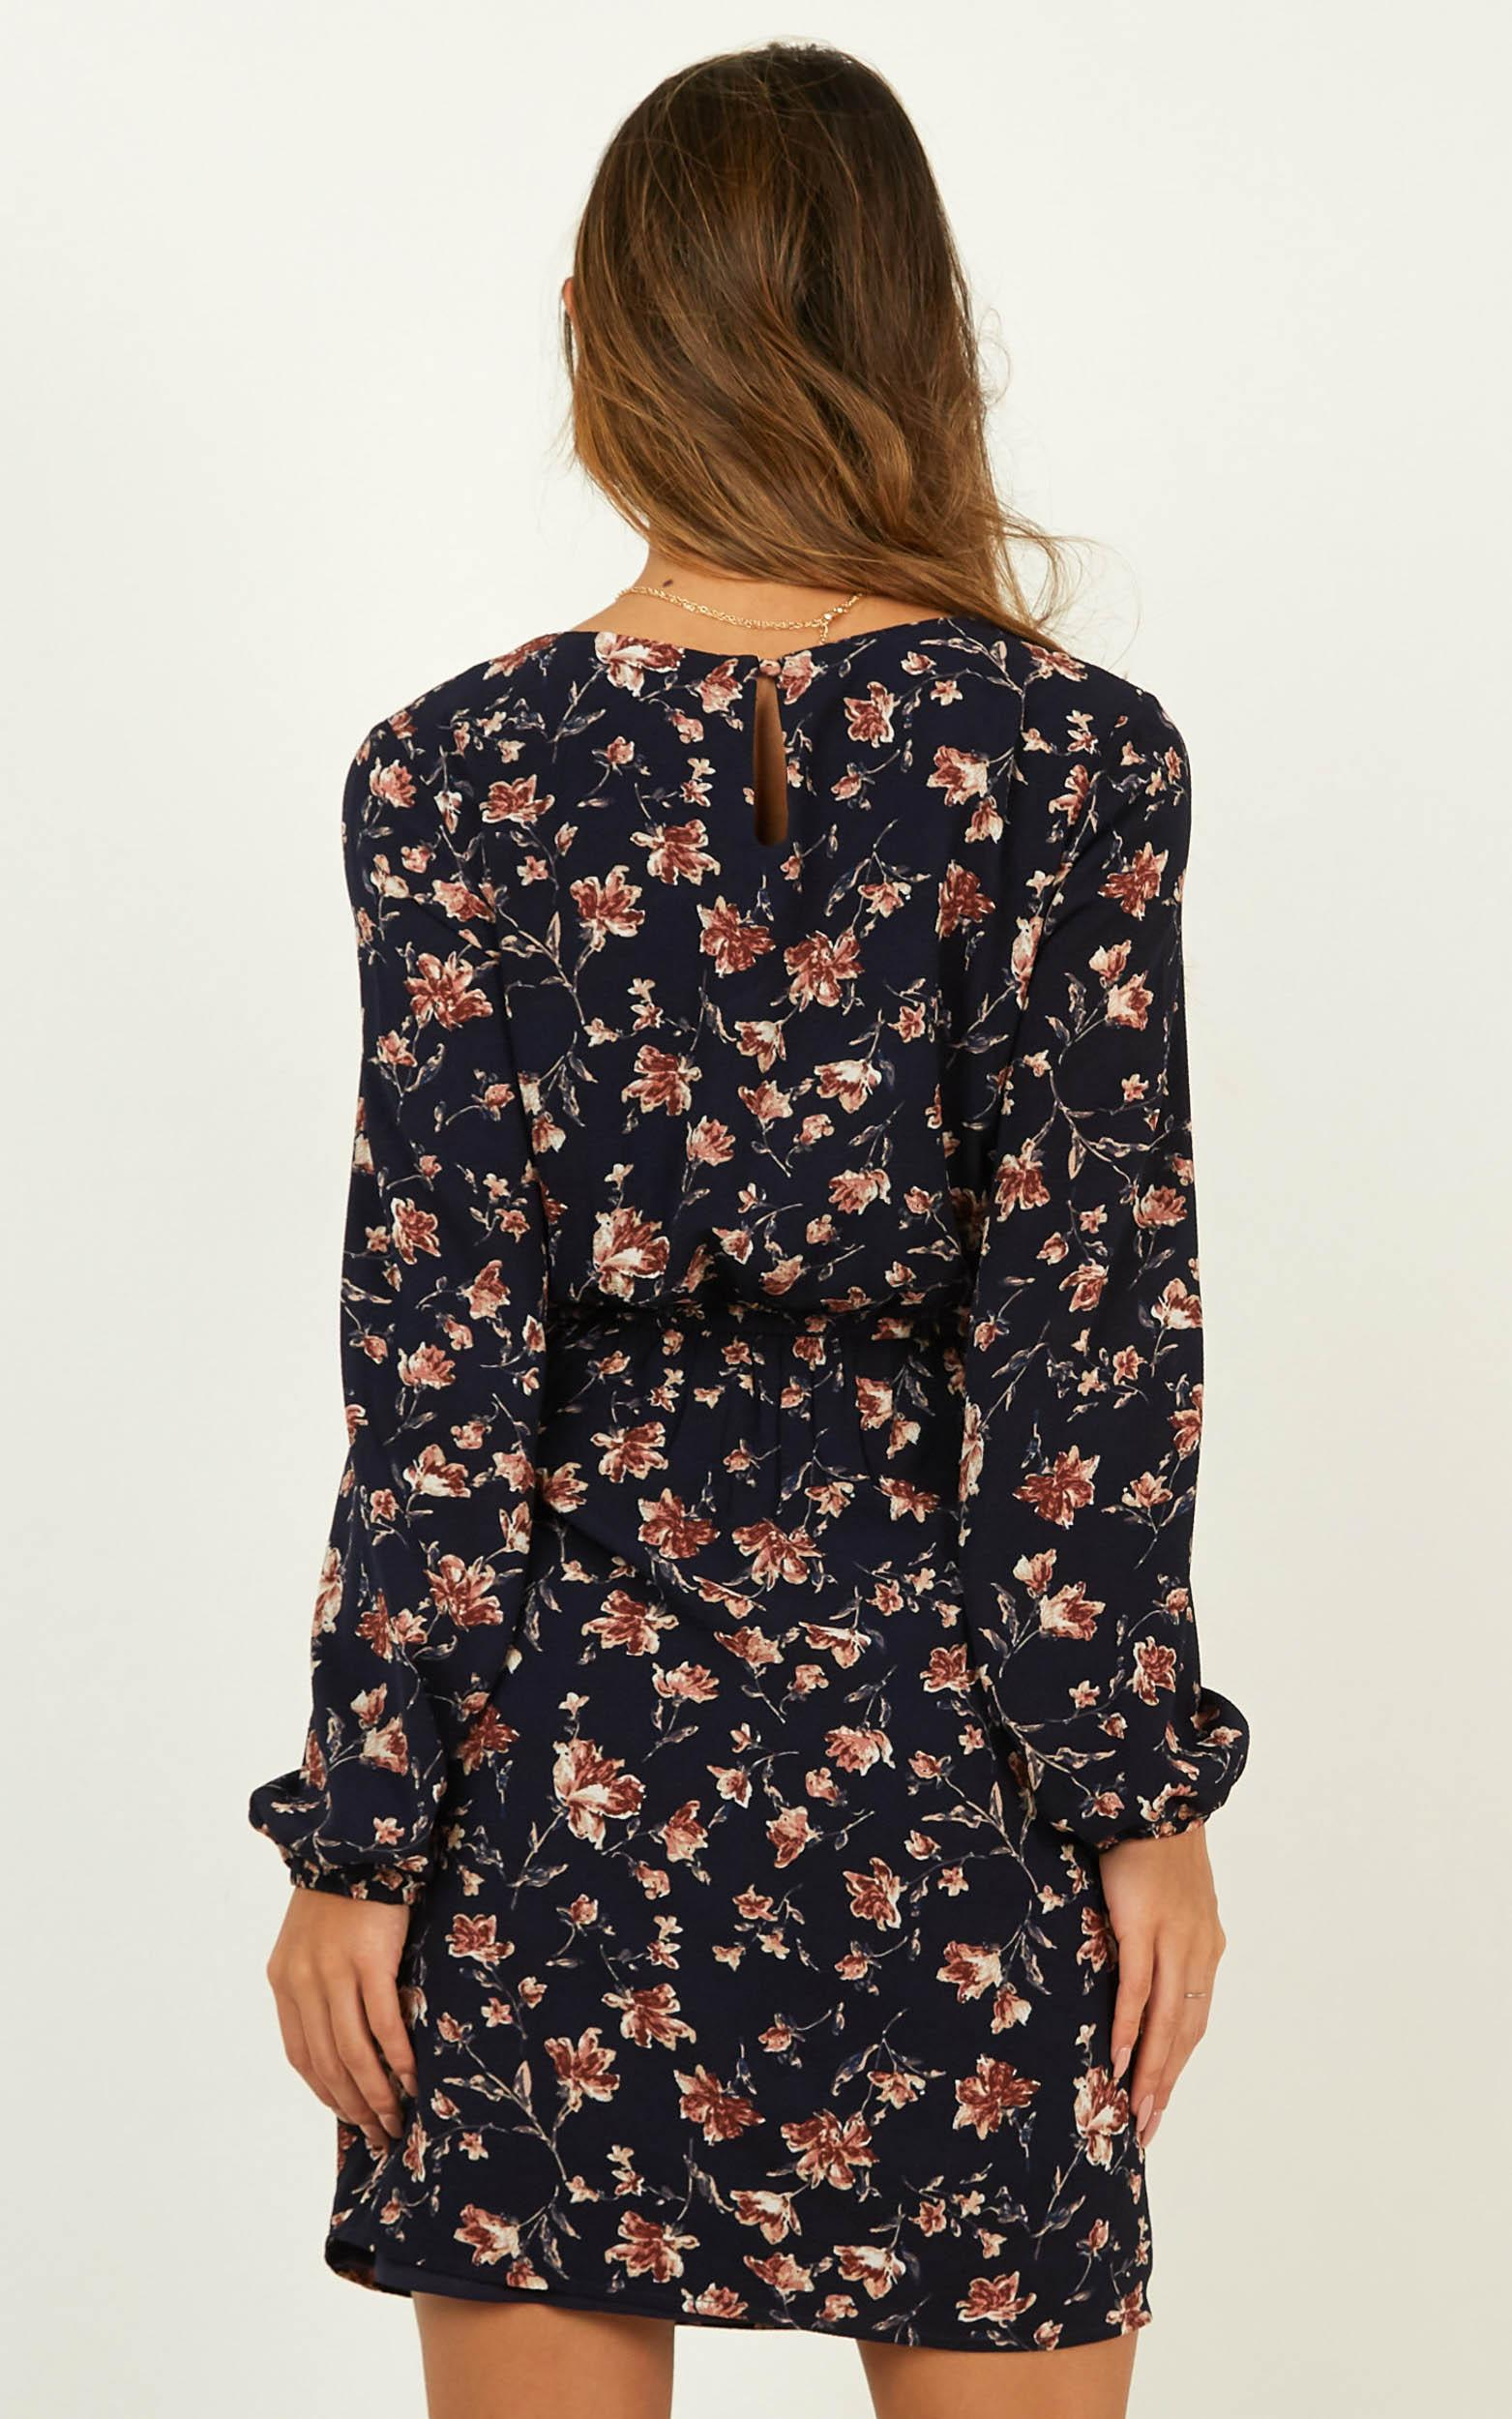 One Last Chance Dress in navy floral - 4 (XXS), Navy, hi-res image number null